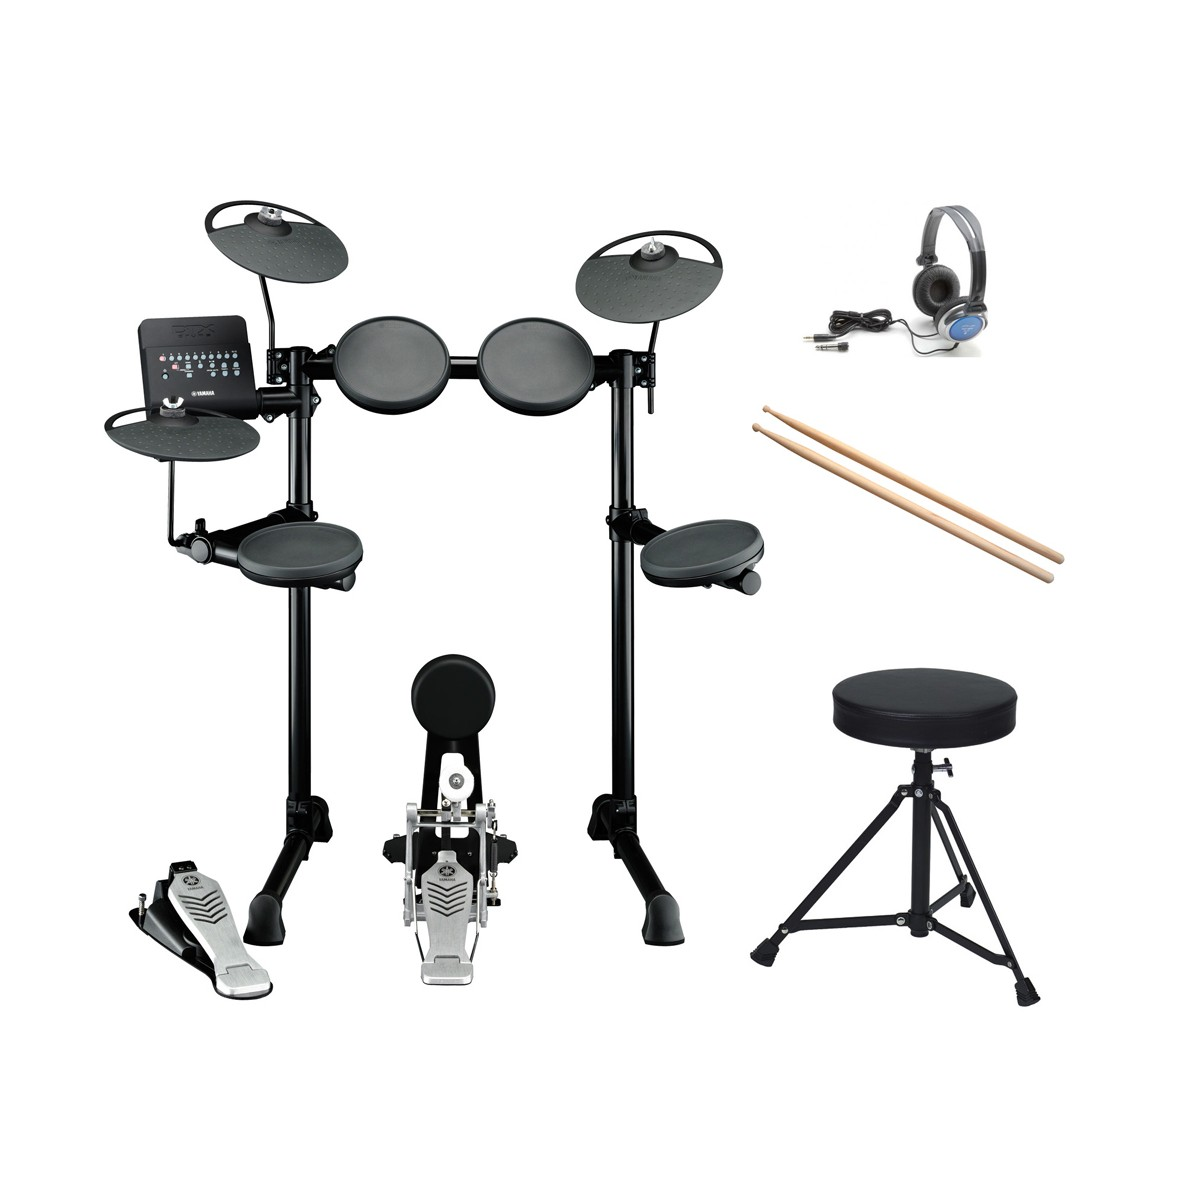 Alfombra Bateria Electronica Yamaha Dtx430k Bateria Electronica Pack Comprar Online